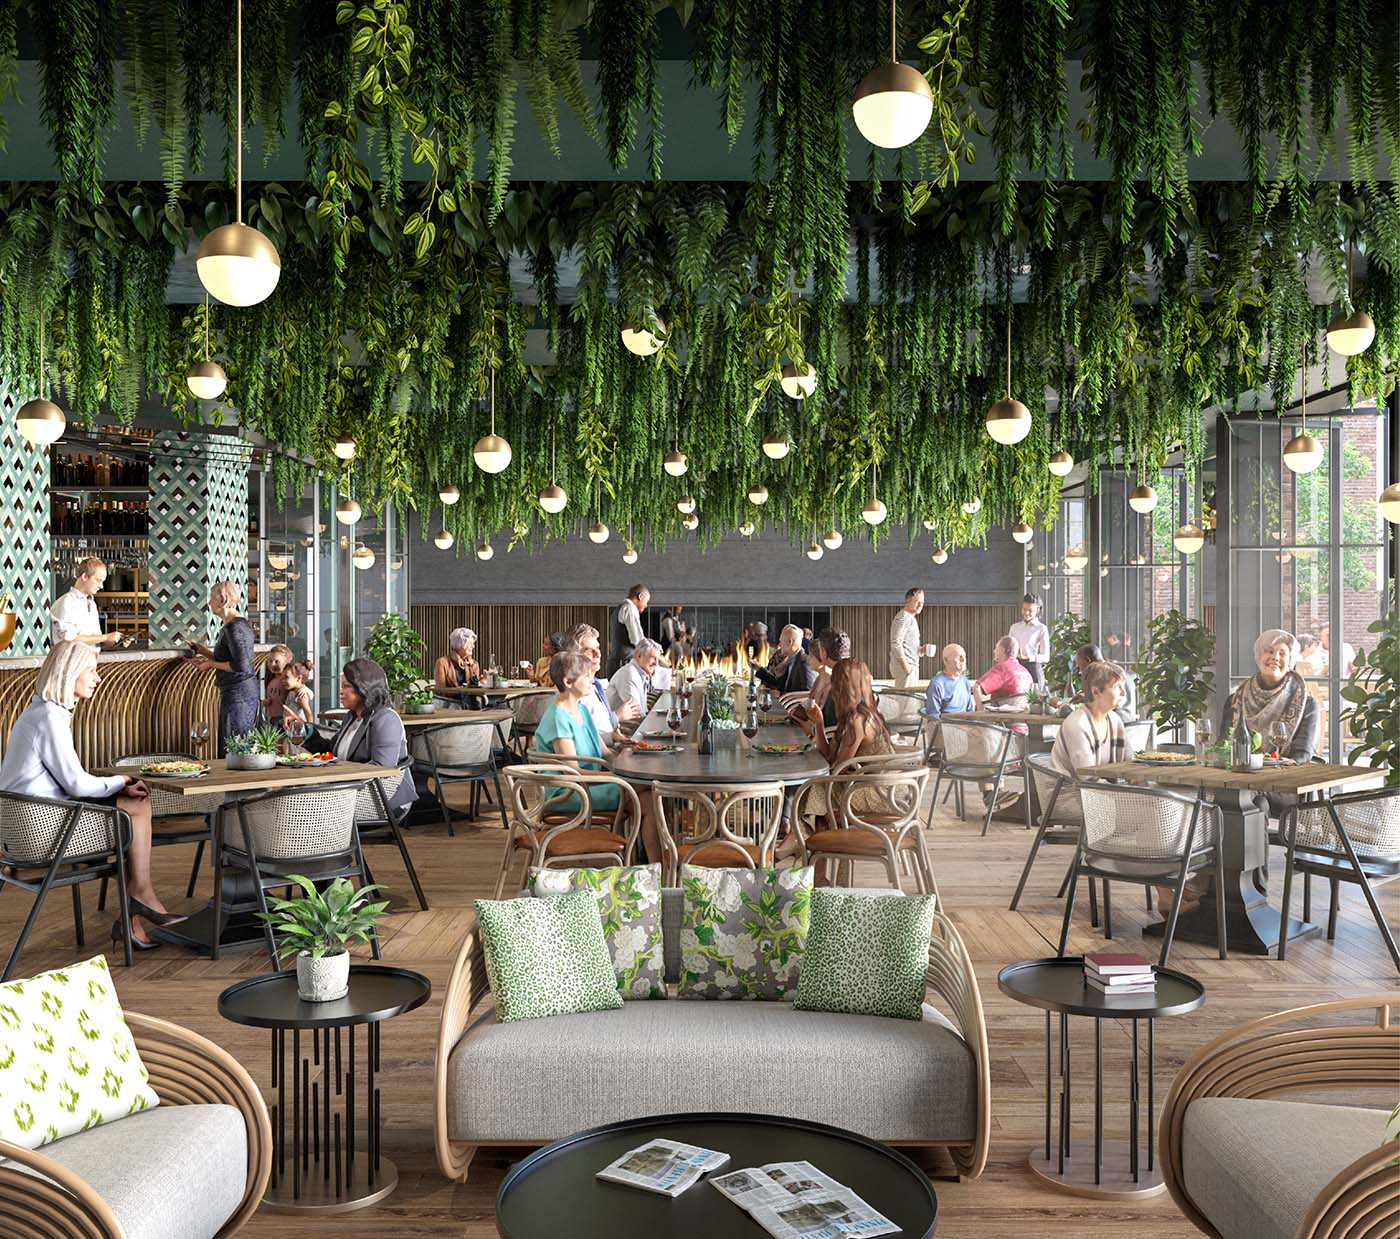 Conservatory area of a retirement village with biophilic interiors and people eating.